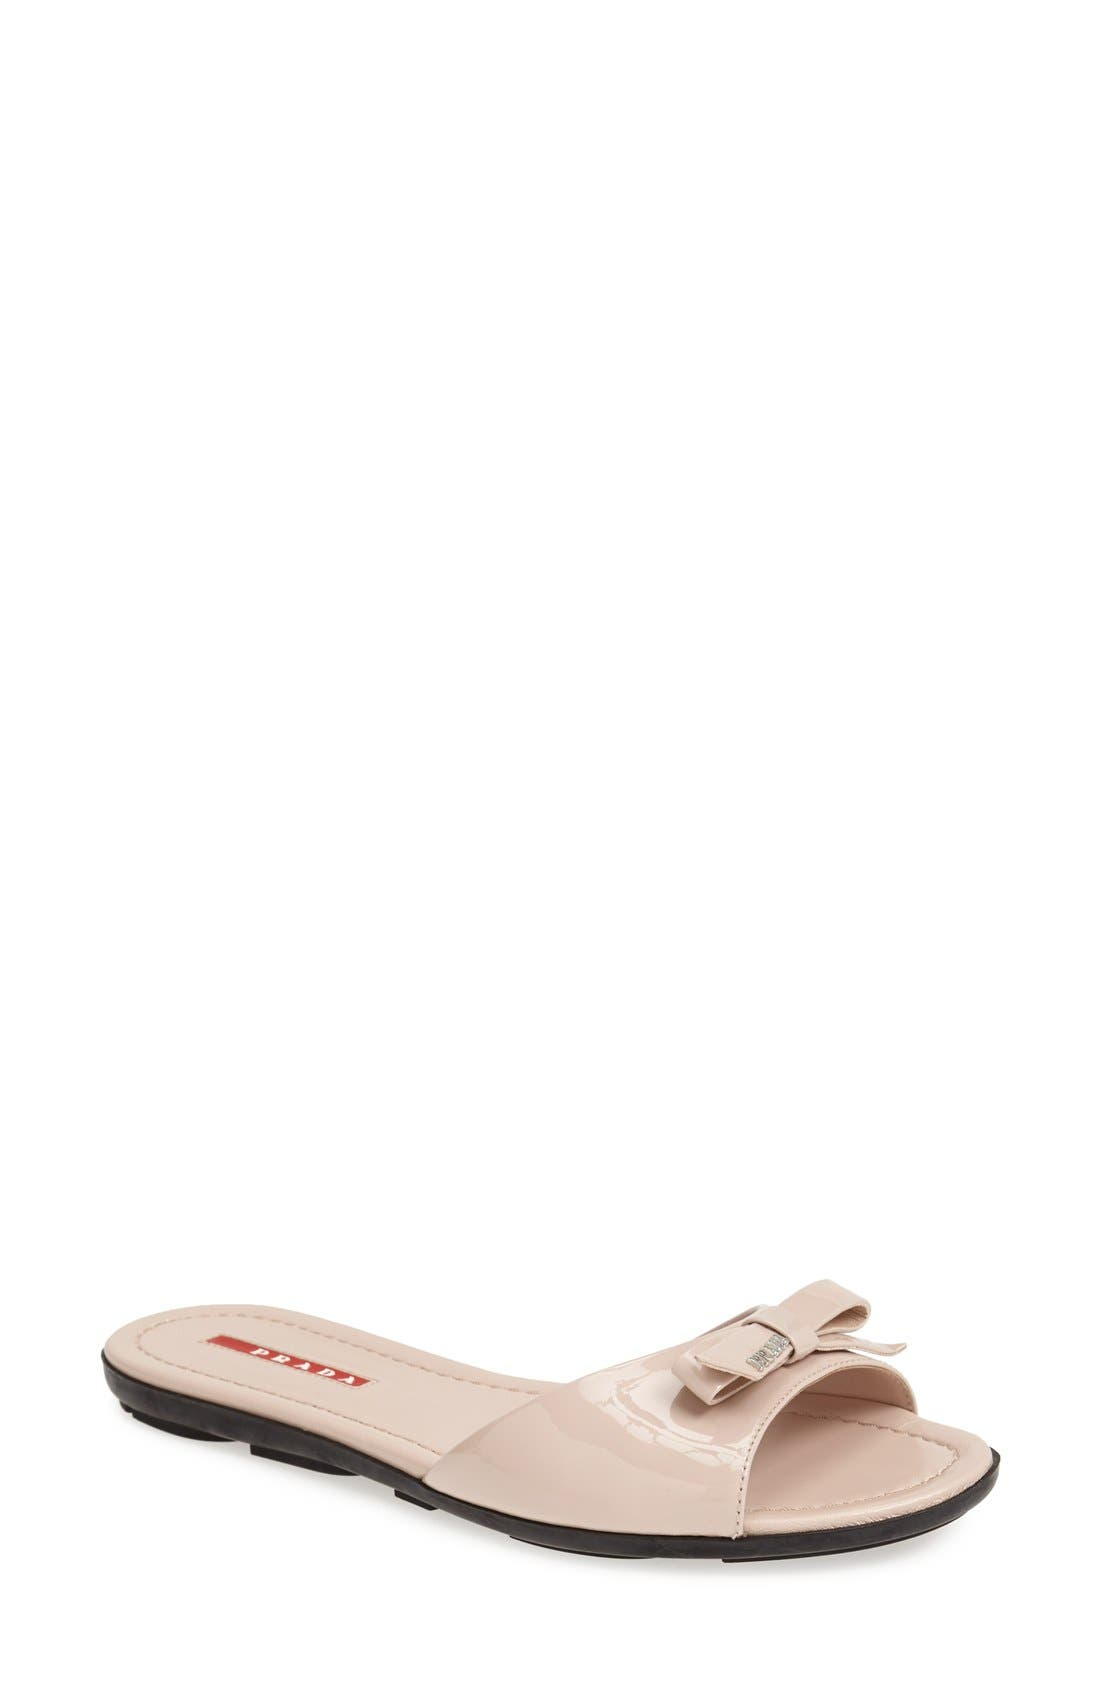 Alternate Image 1 Selected - Prada Bow Slide Sandal (Women)